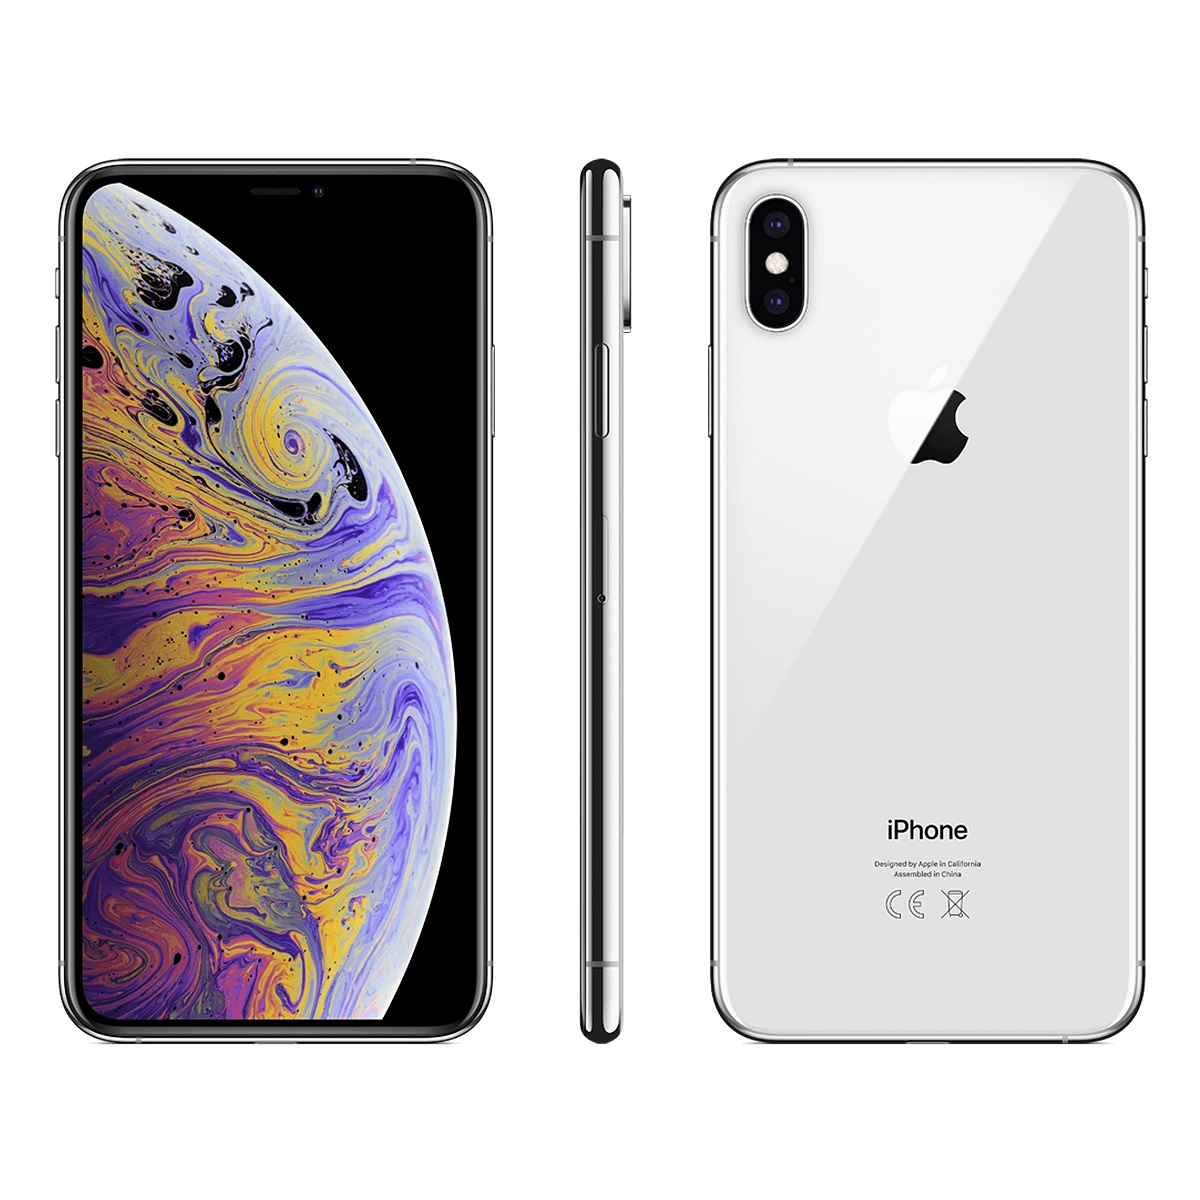 Image of Apple iPhone XS Max 64GB Dual Sim (2 nano-SIM) SIM FREE/ UNLOCKED A2104 - Silver